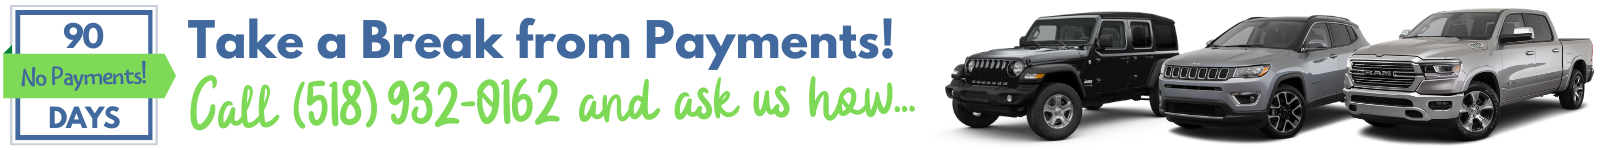 90 Days No Payments CJDRQ